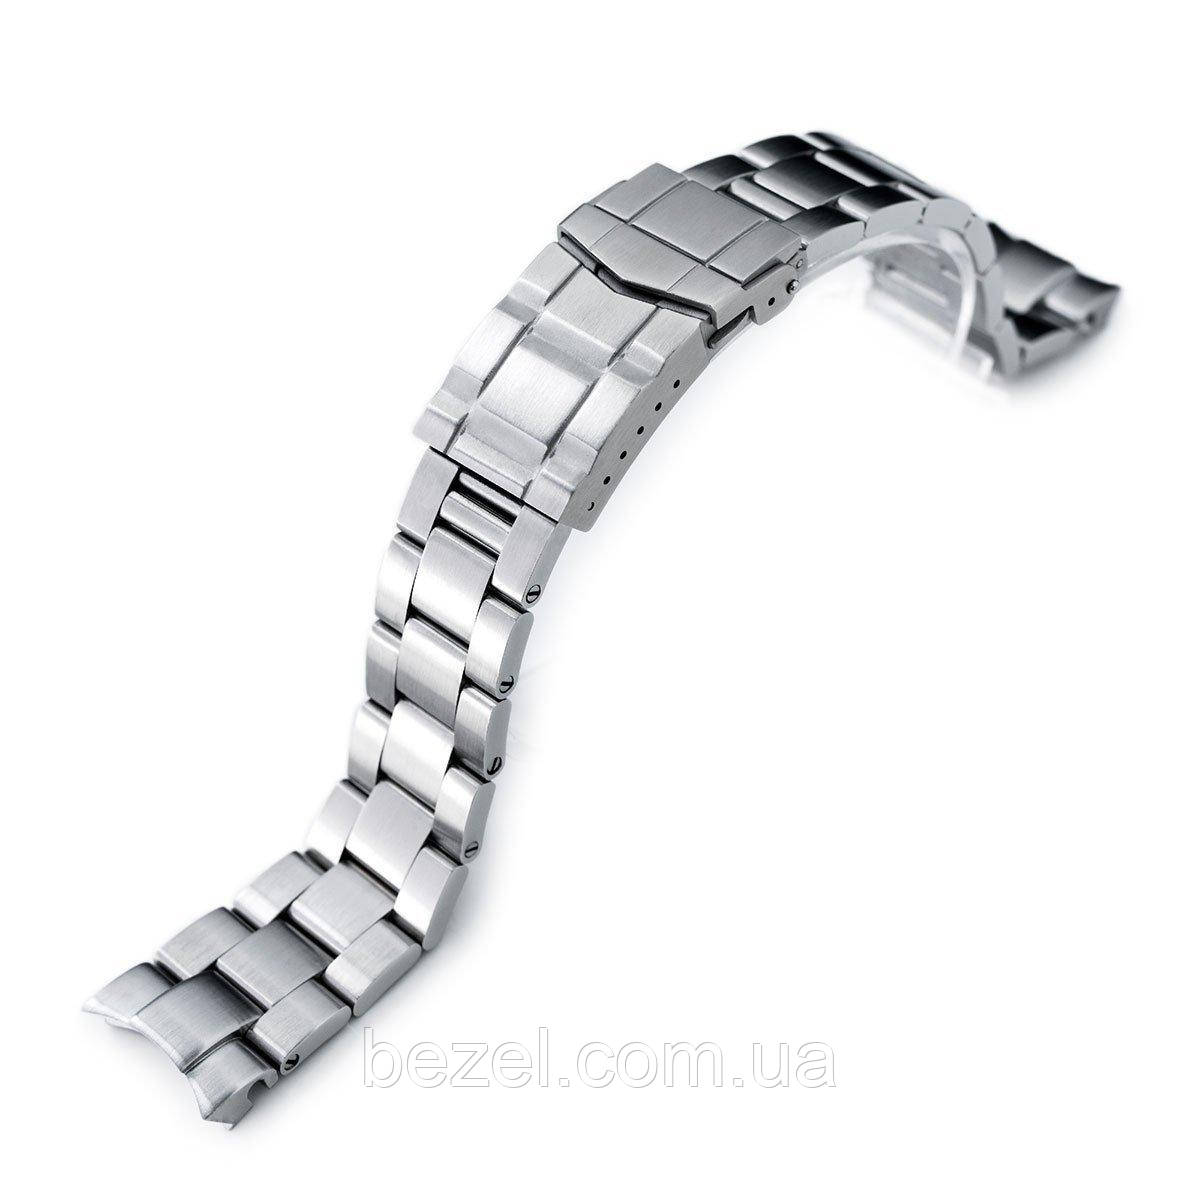 20mm Super 3D Oyster watch band for Seiko Alpinist SARB017, Brushed, Solid Submariner Clasp